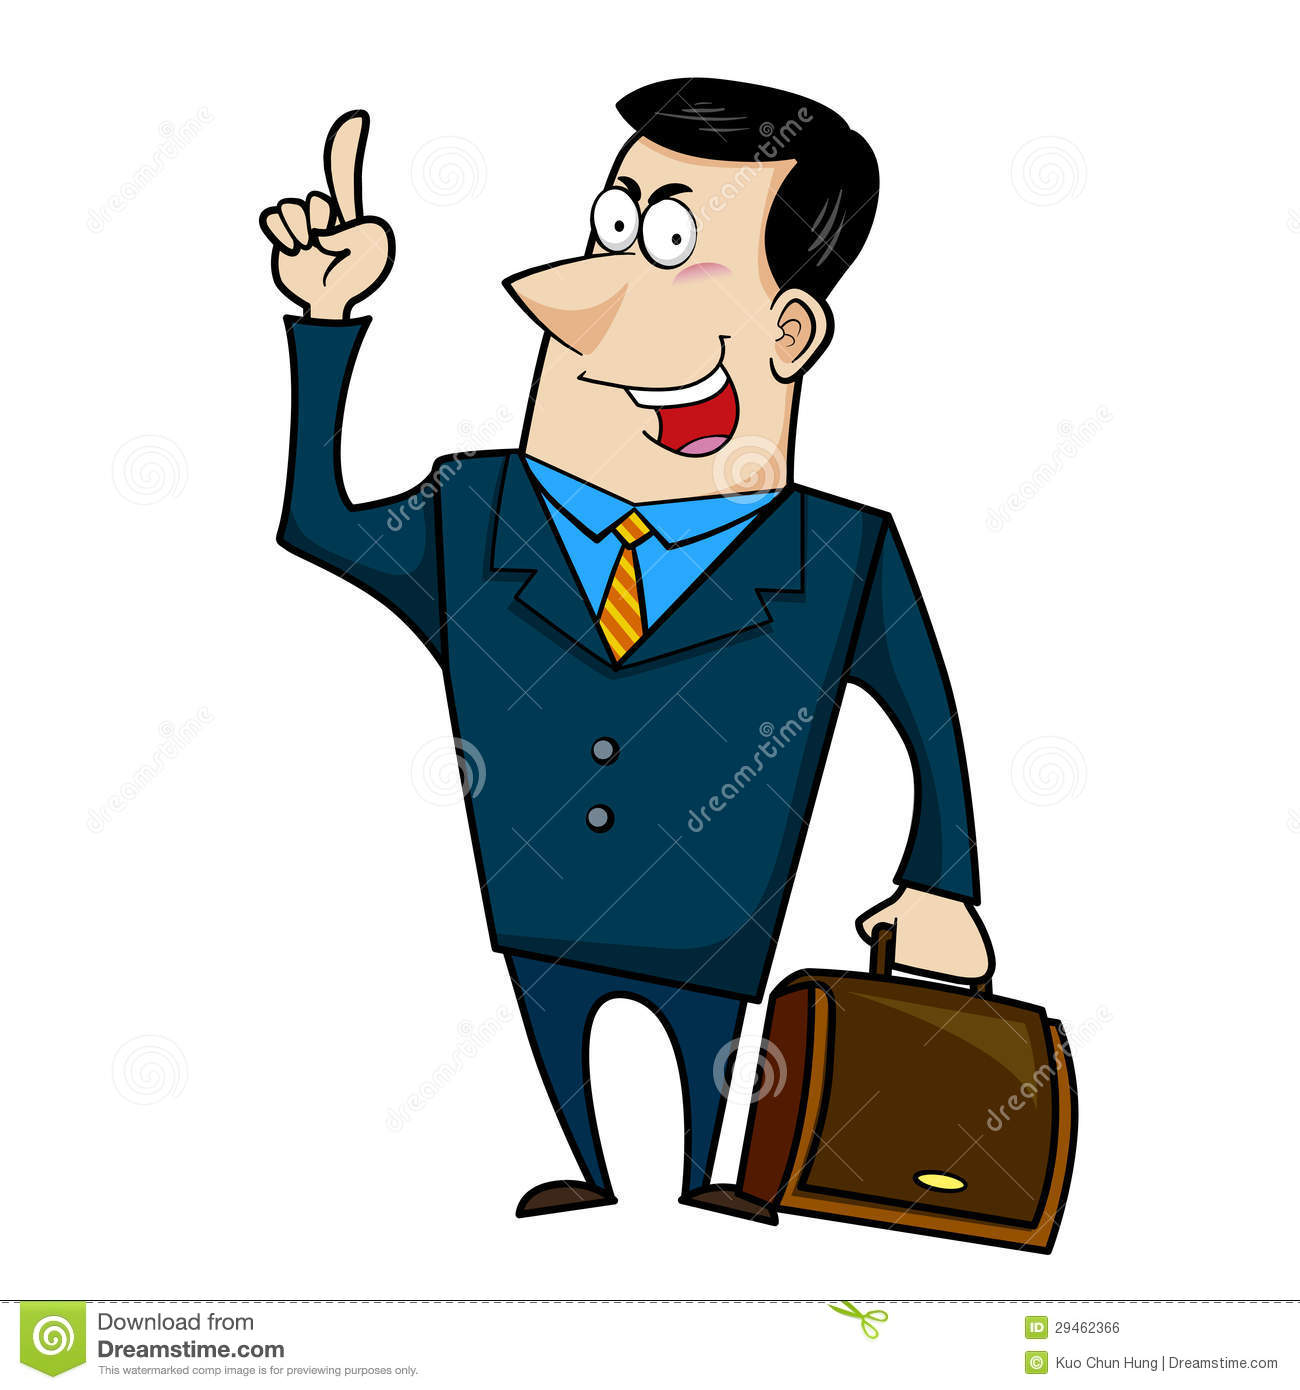 cartoon-business-man-29462366.jpg